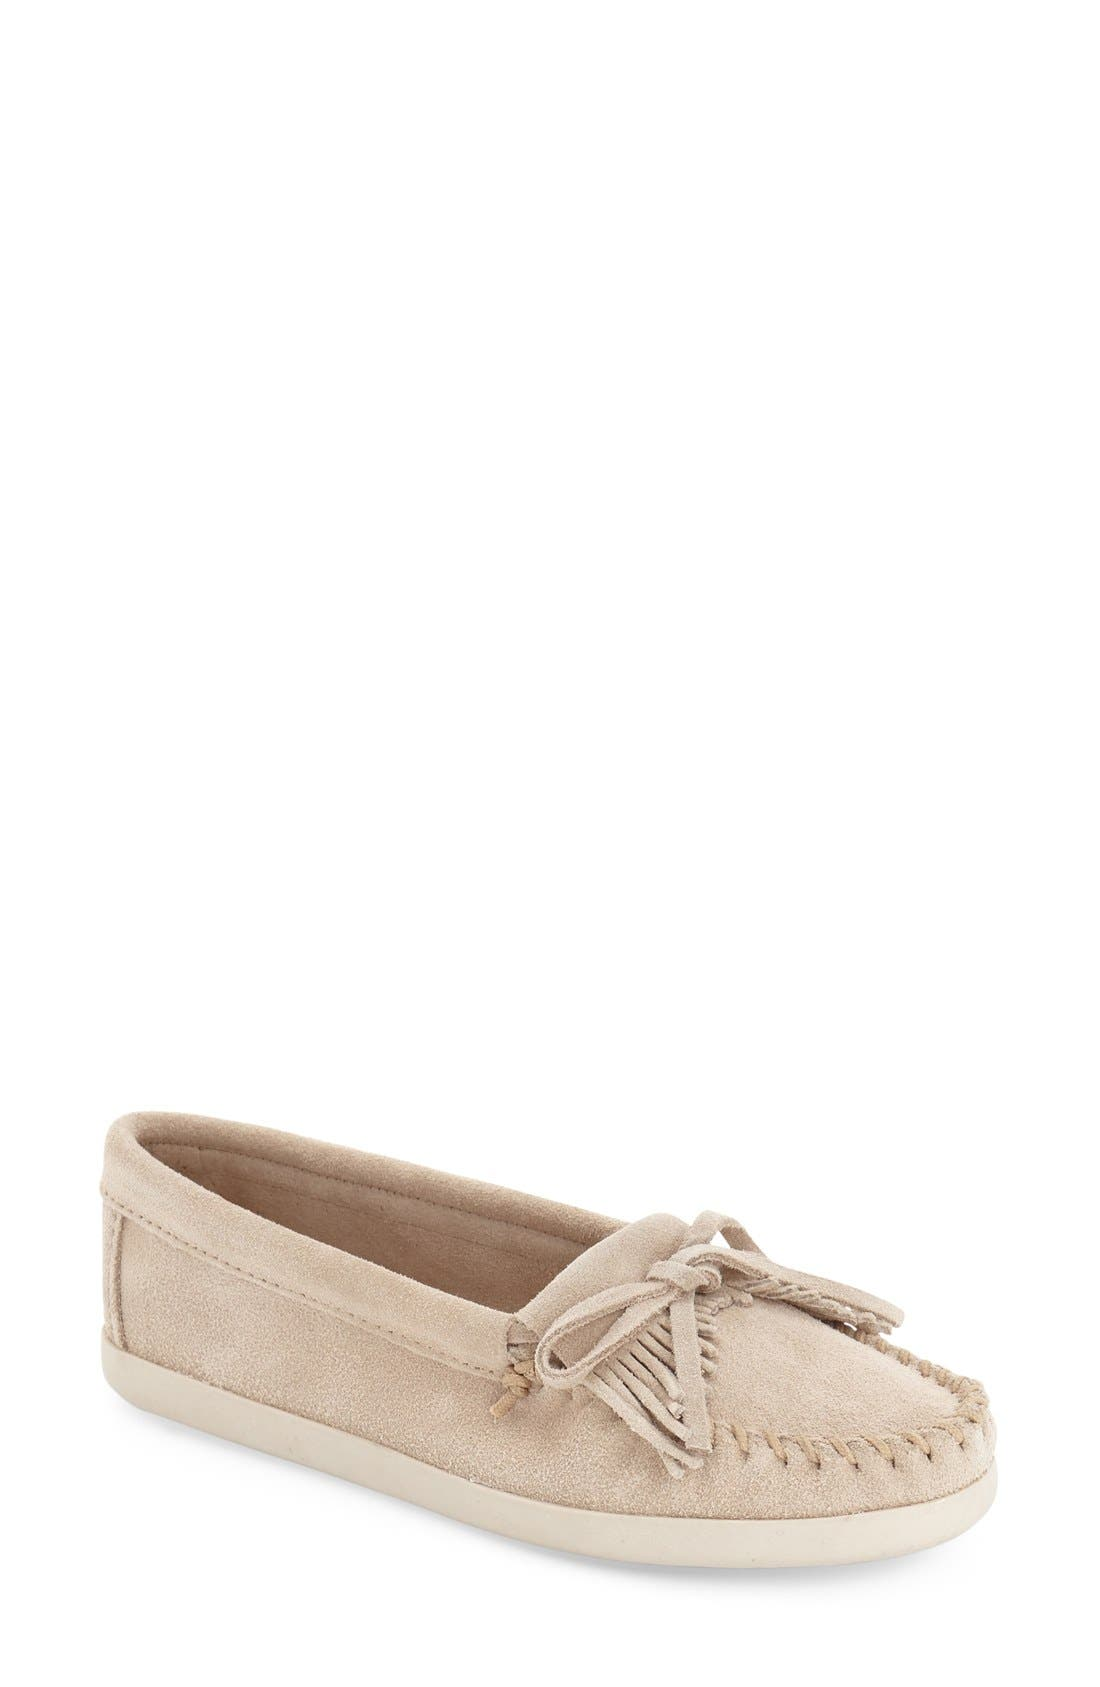 Minnetonka 'Newport Kilty' Moccasin Flat (Women)